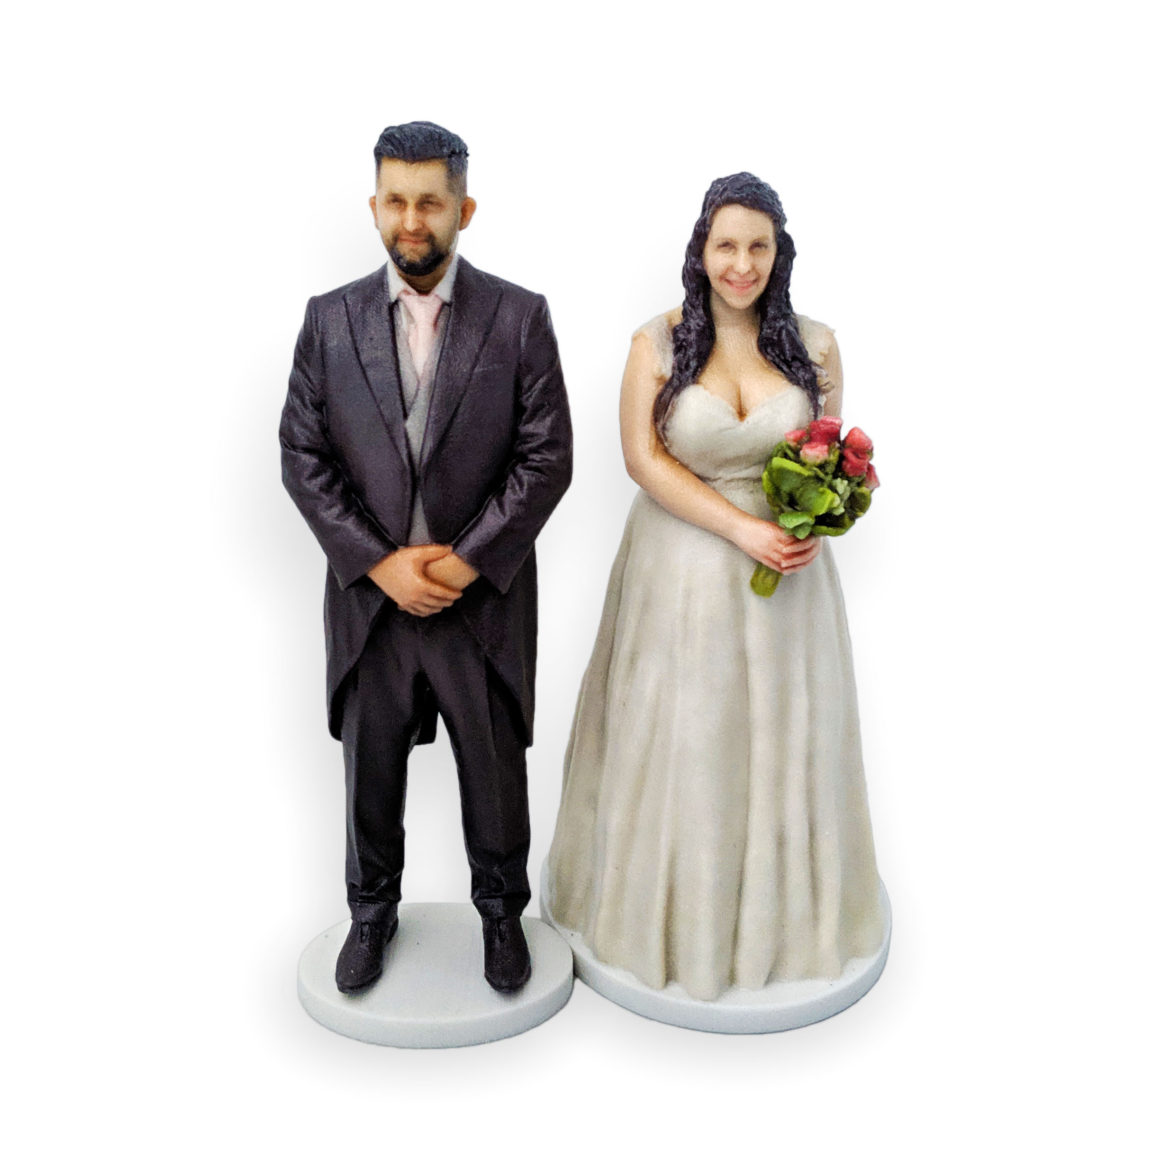 my3Dtwin, Custom Wedding Cake Topper of a groom and bride with bouquet